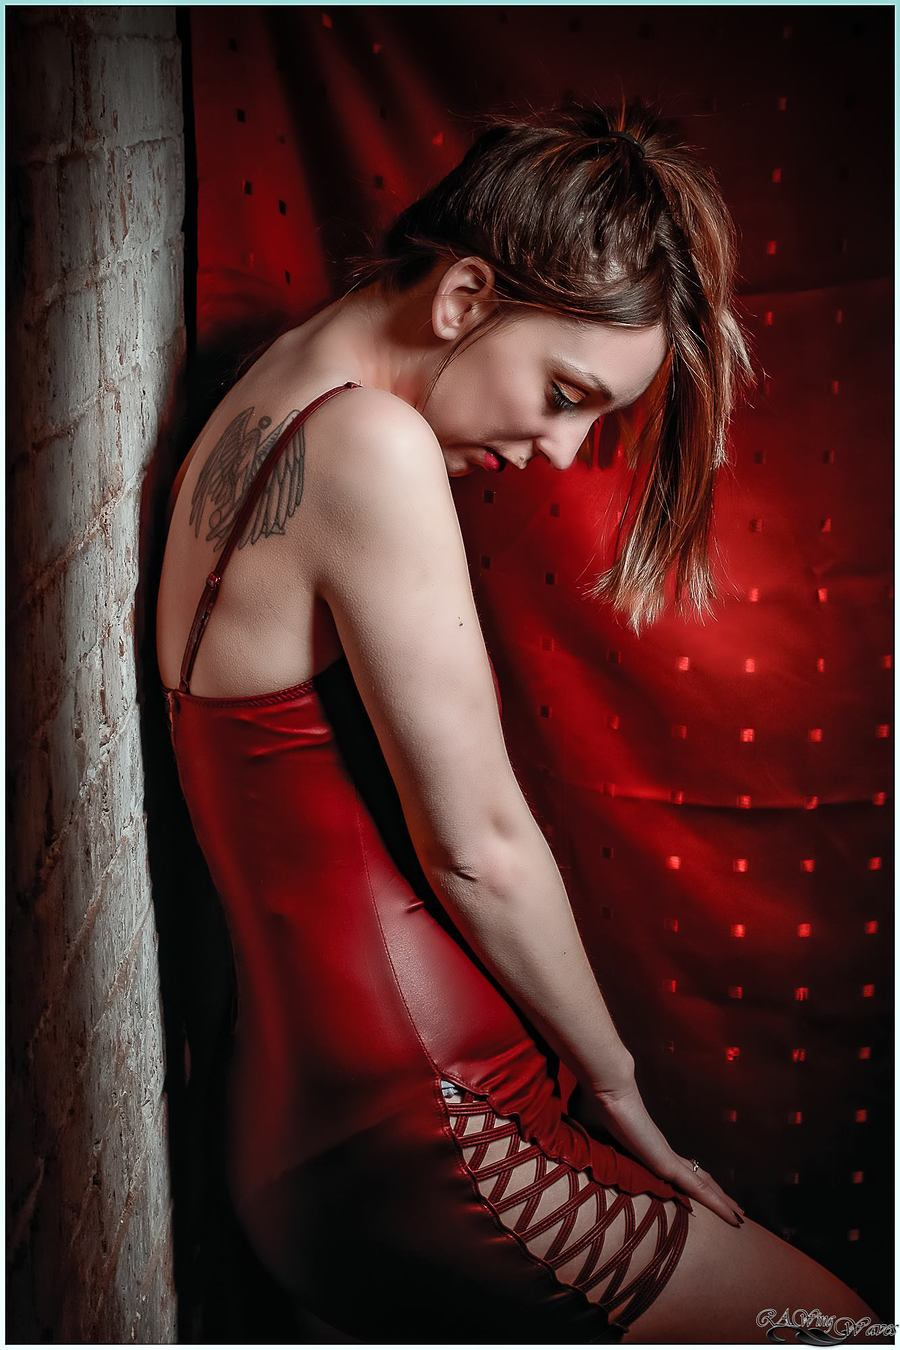 Lady in red / Photography by RAWing Waves, Model Madame Cerise, Taken at Art Asylum Reloaded Photo Studio / Uploaded 25th April 2018 @ 01:59 PM